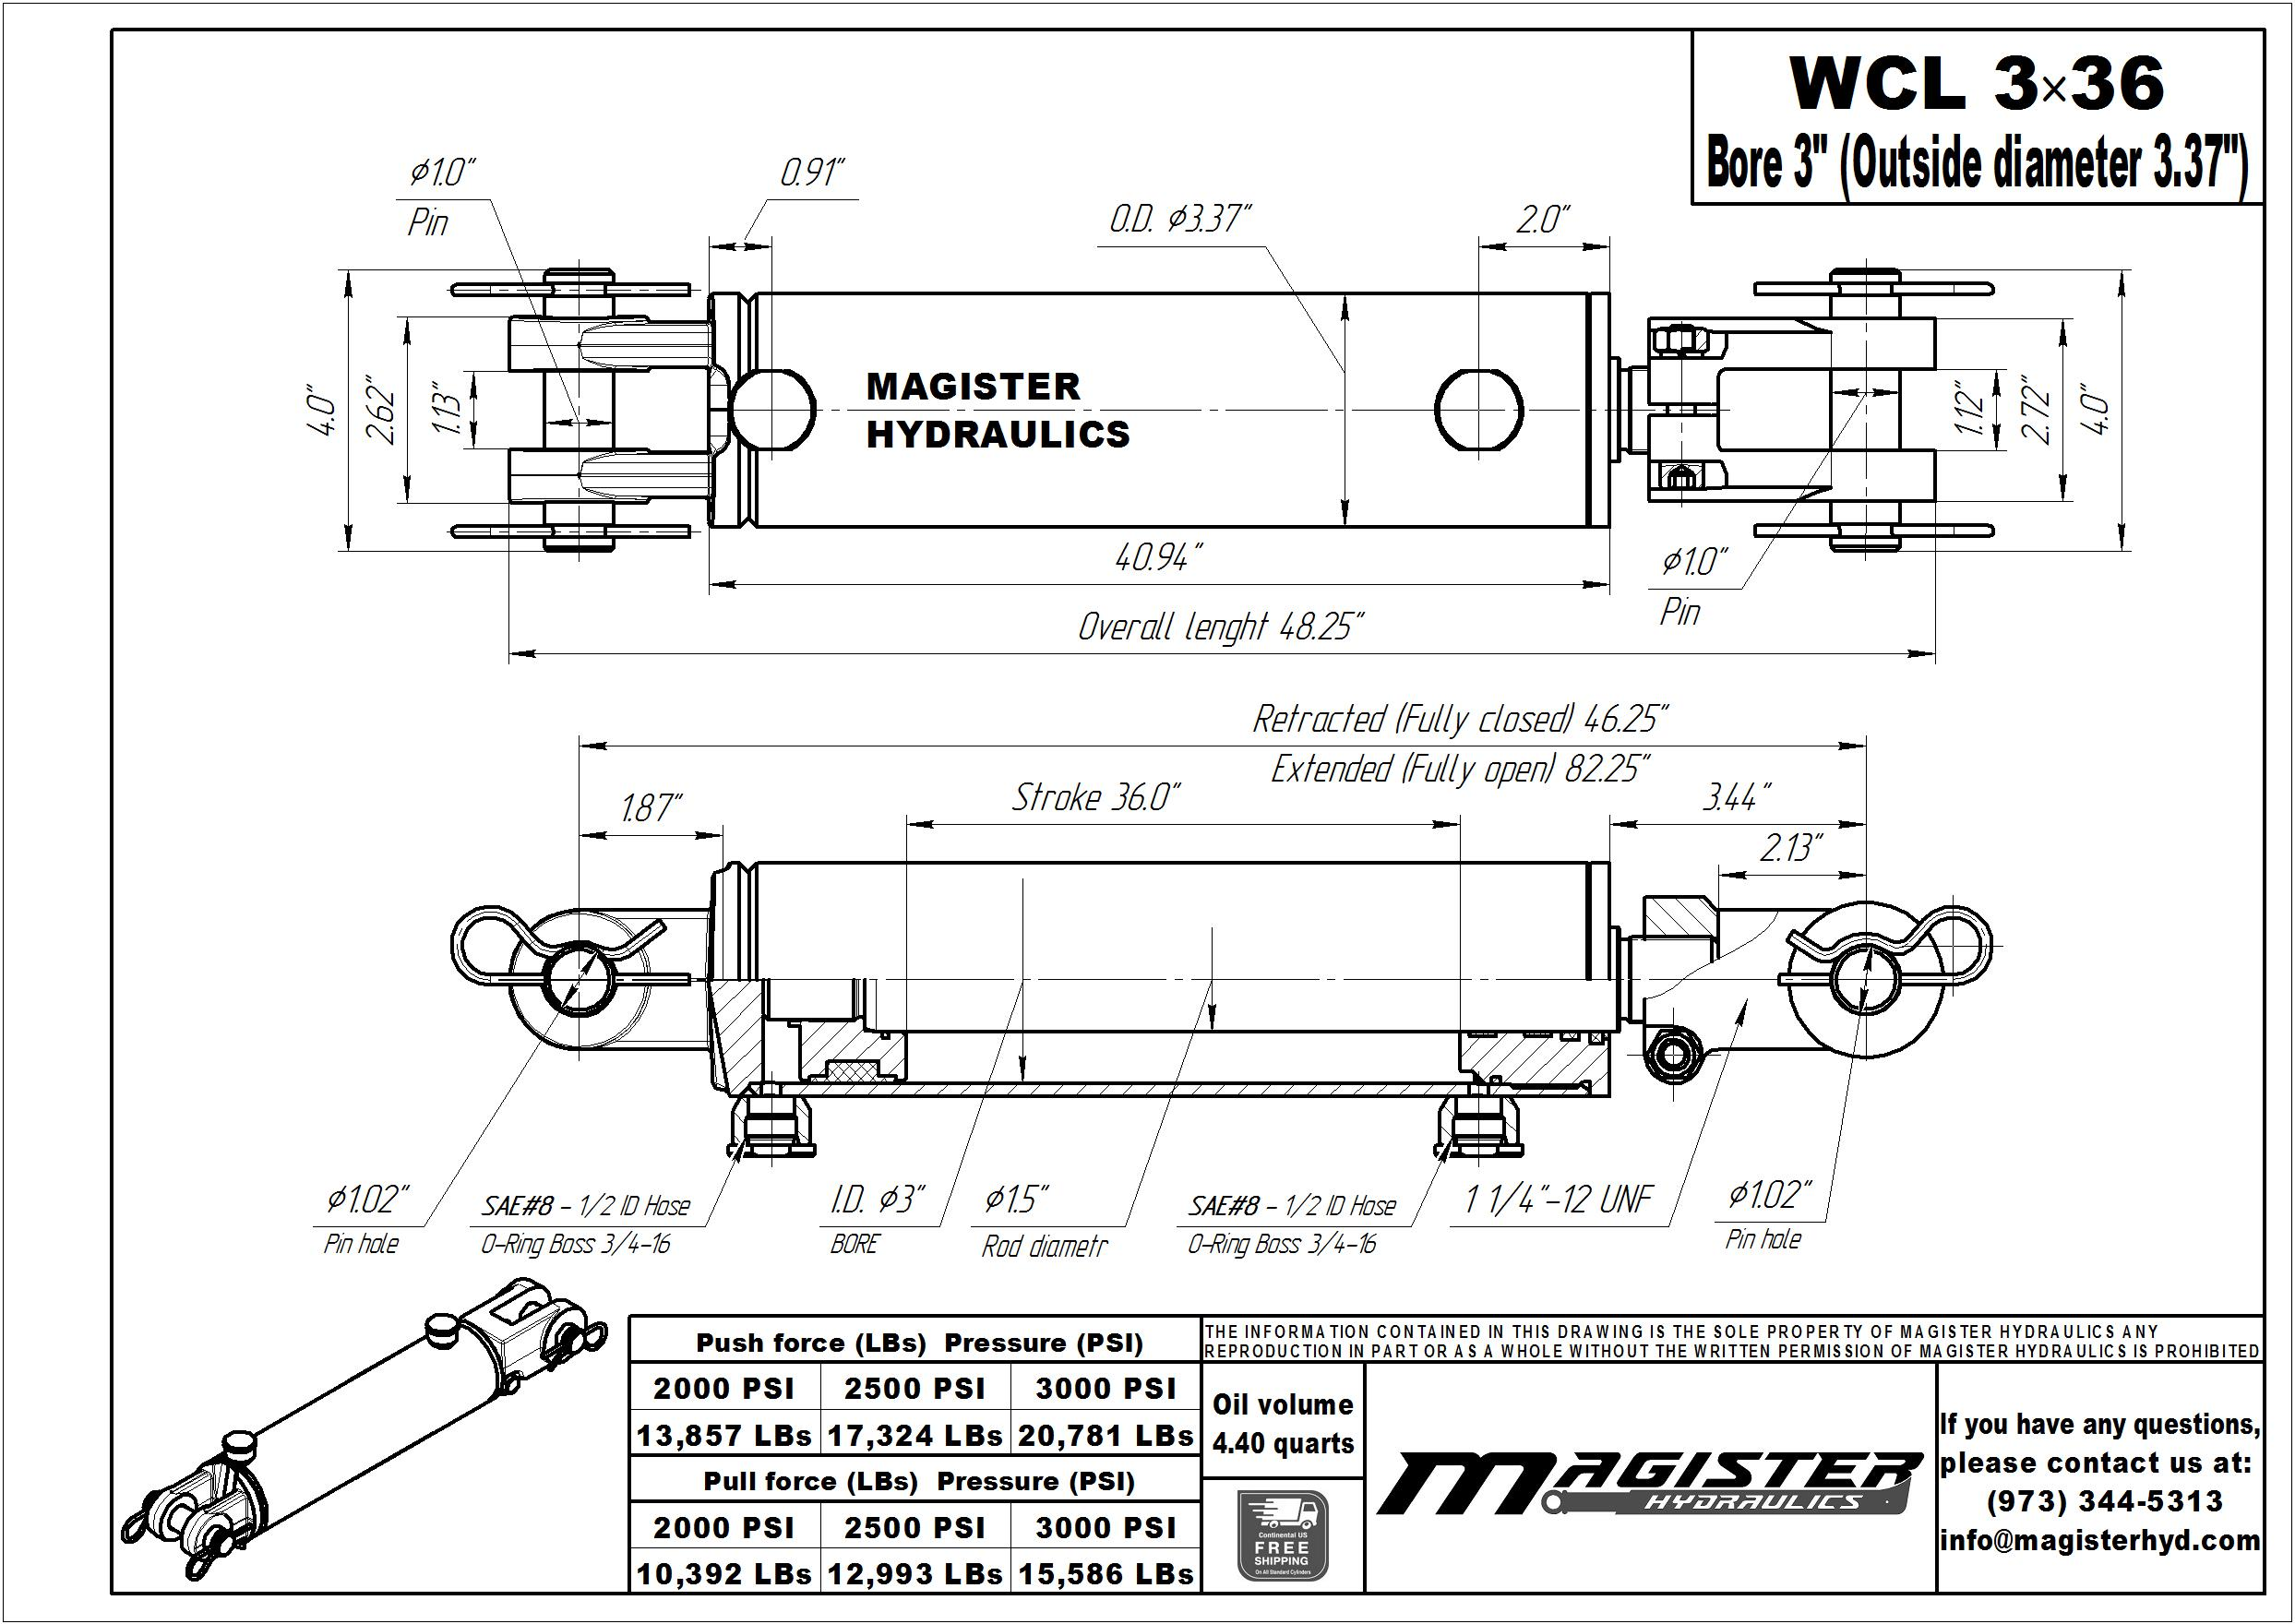 3 bore x 36 stroke hydraulic cylinder, welded clevis double acting cylinder | Magister Hydraulics